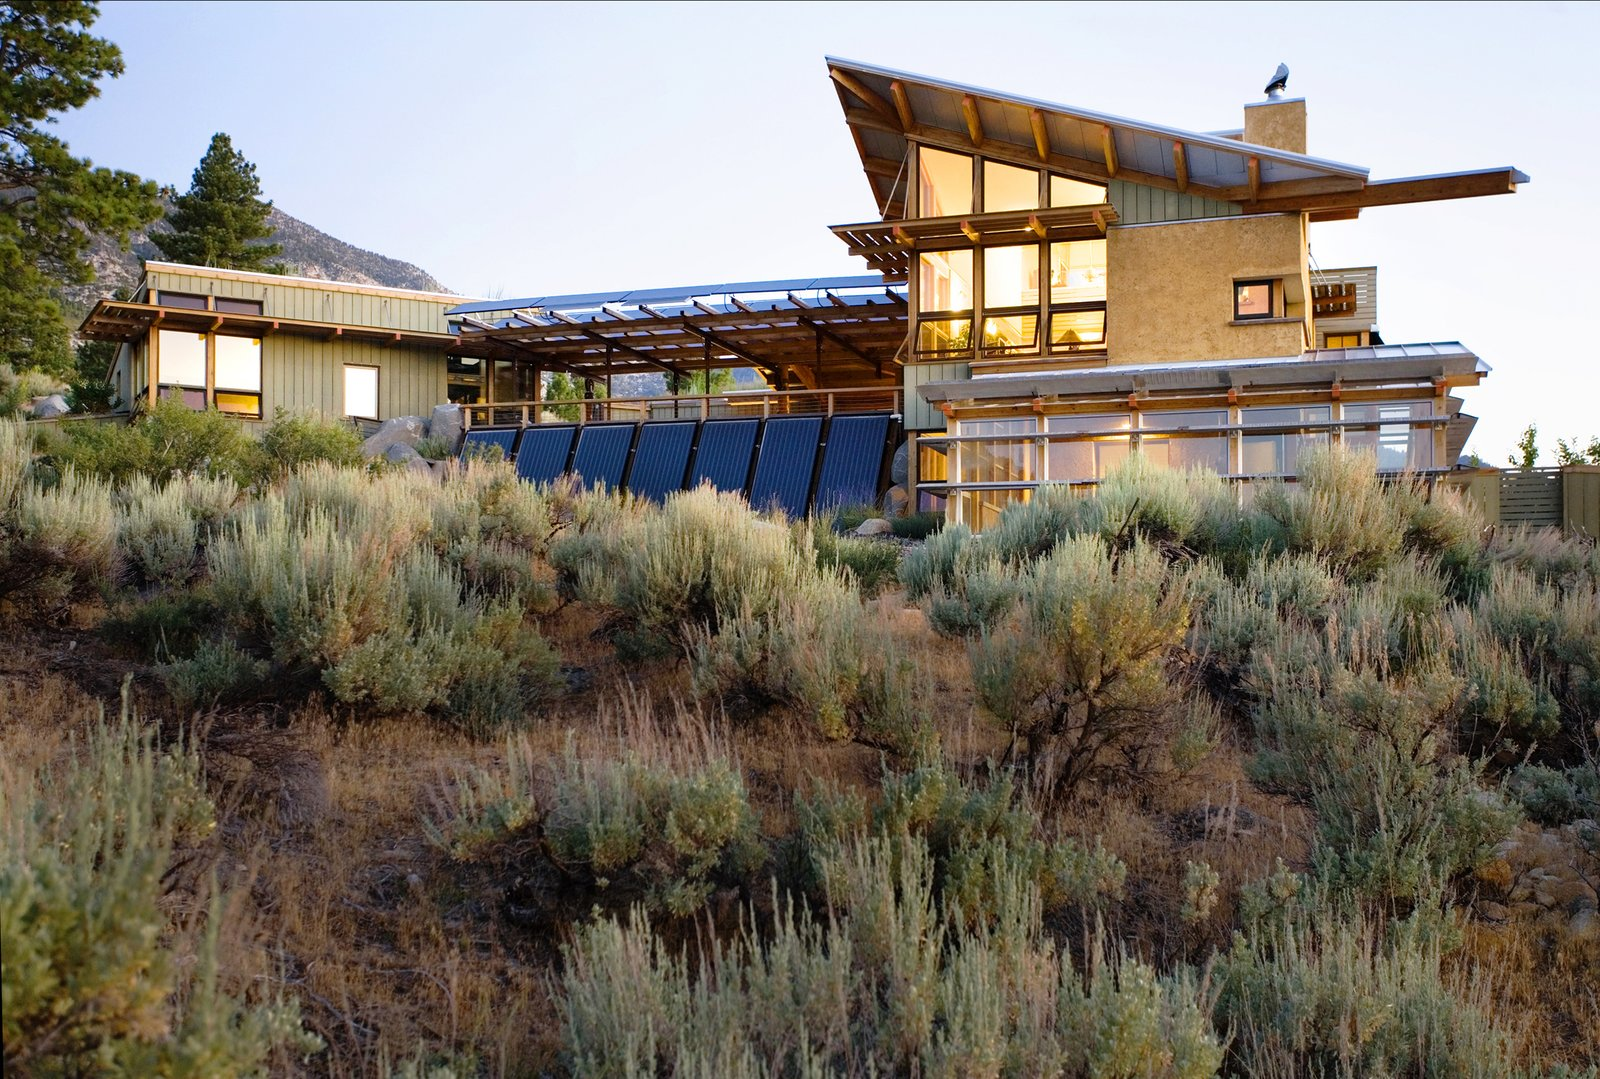 The earth finish, slatted cement board siding, and metal roofing harmonizes with the landscape and take advantage of the changing desert light.